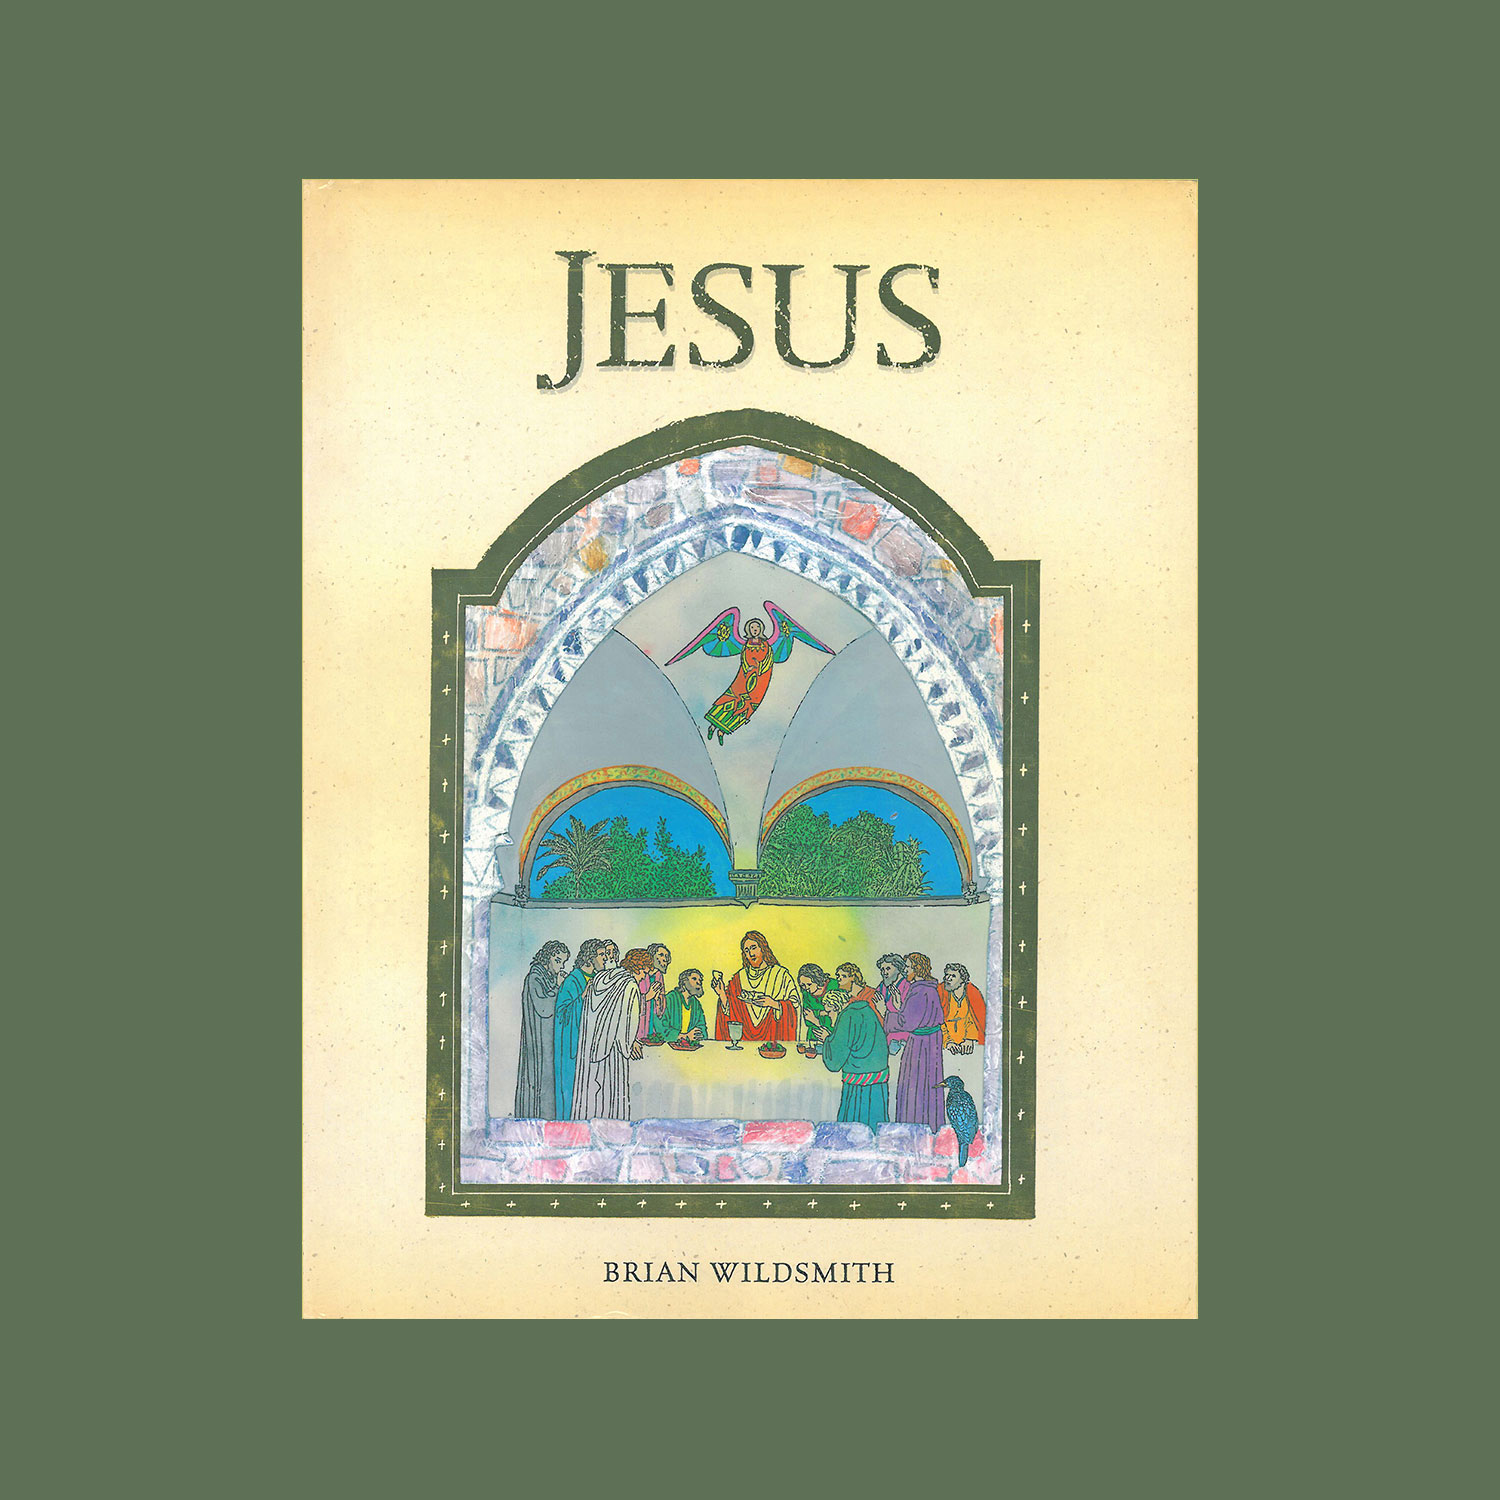 """JESUS - 2000""""In this stunning picture book, Brian Wildsmith portrays the life of Jesus of Nazareth.""""""""In a series of powerful scenes framed by gold. After beginning with the birth of Jesus in Bethlehem and the visit of the shepherds and wise men he shows Jesus' youth in Nazareth, his baptism and temptation and his teaching and miracles. Finally Wildsmith depicts Jesus' entry into Jerusalem, his death on the cross, his resurrection and ascension.""""""""Each frame, reminiscent of an early gothic style, presents cameos of events enriched by Wildsmith's inspired sense of decoration. Pictures to be dreamed over, and meditated upon, over and over again.""""Times Educational Supplement"""